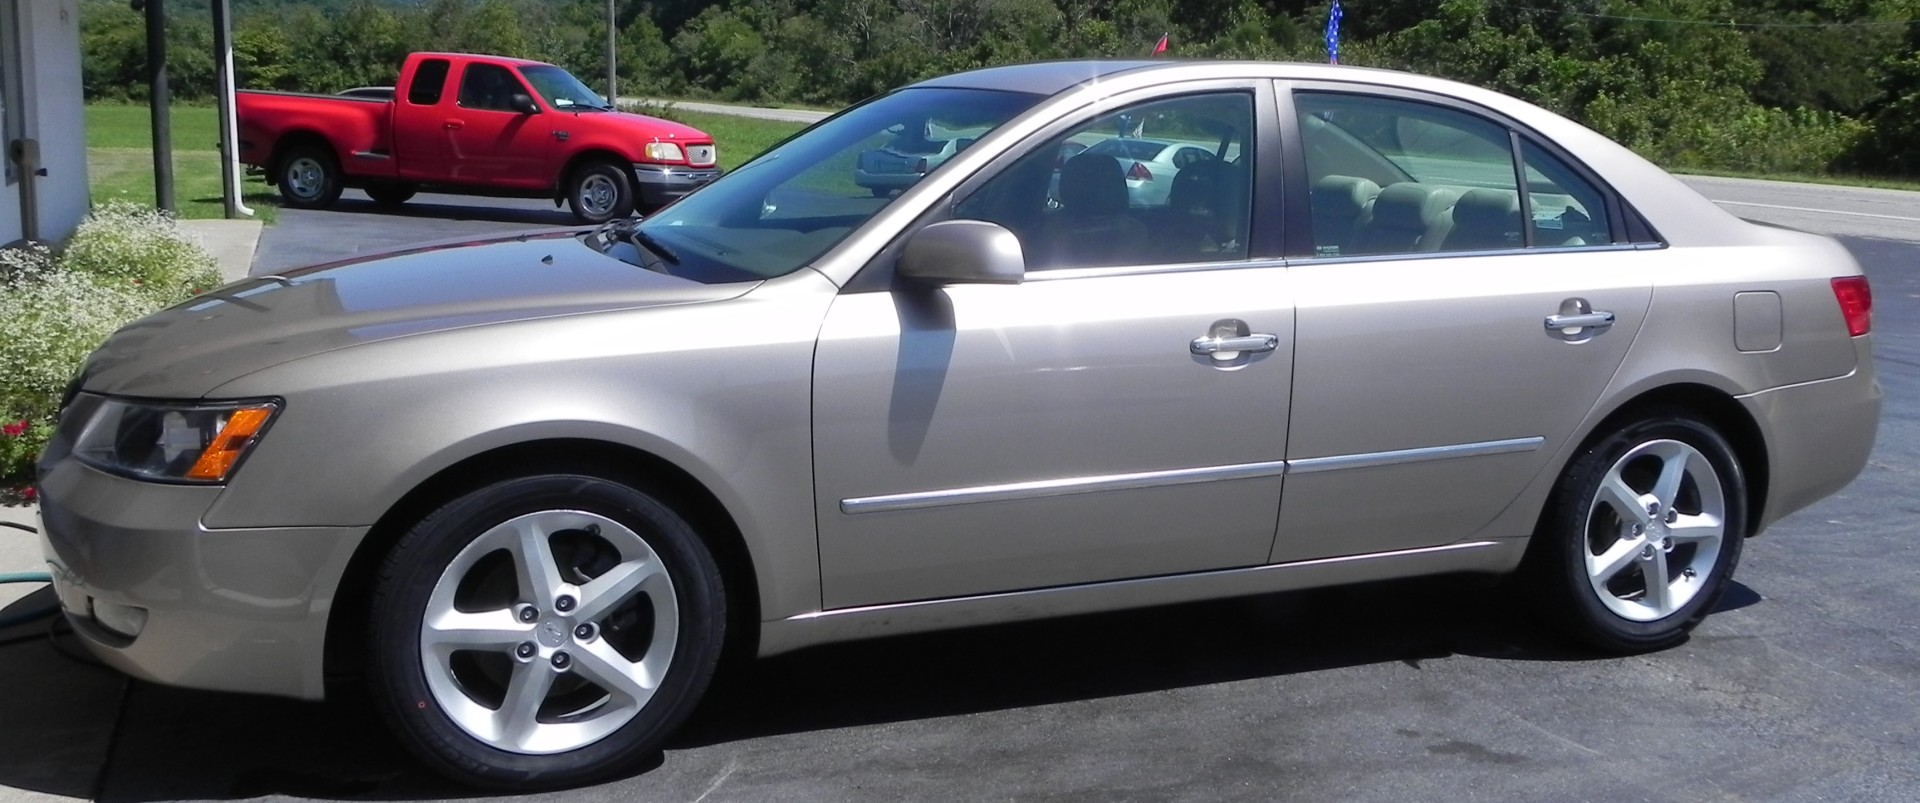 2008 Hyundai Sonata (Heated Leather Seats)